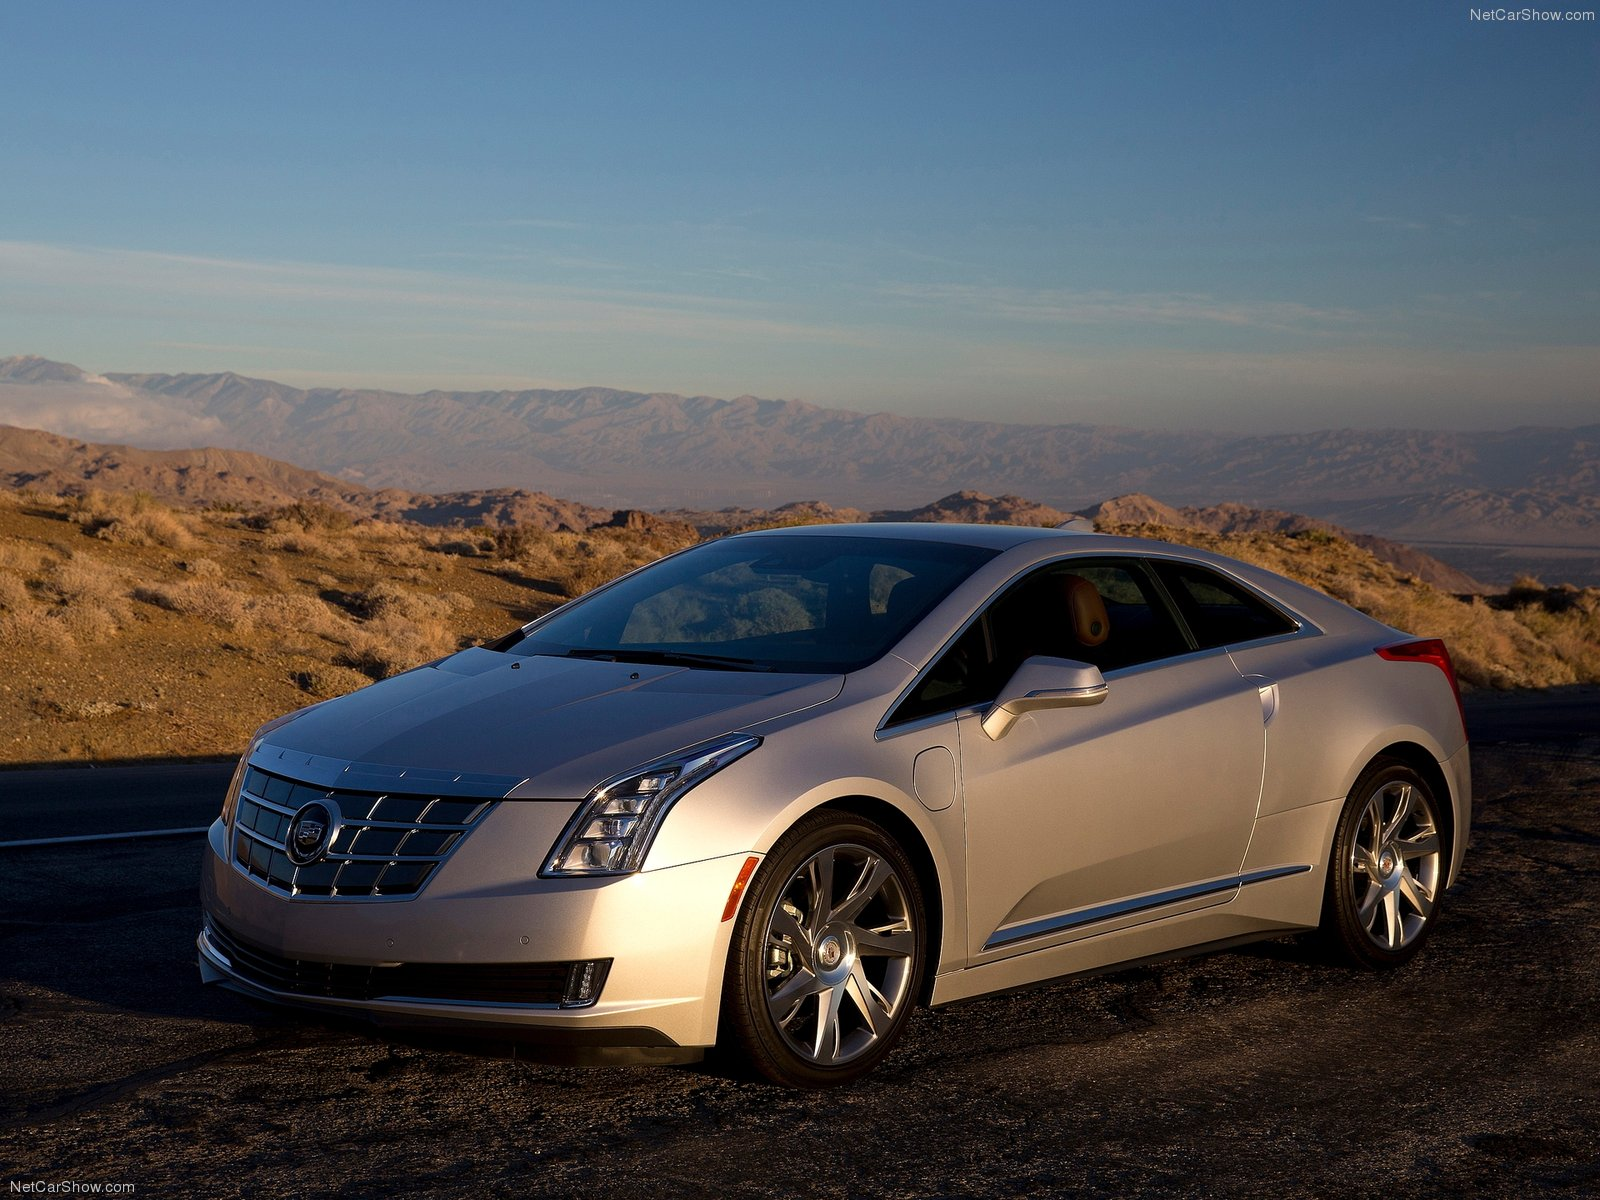 coupe cadillac graphite for photo elr car jet black metallic in sale